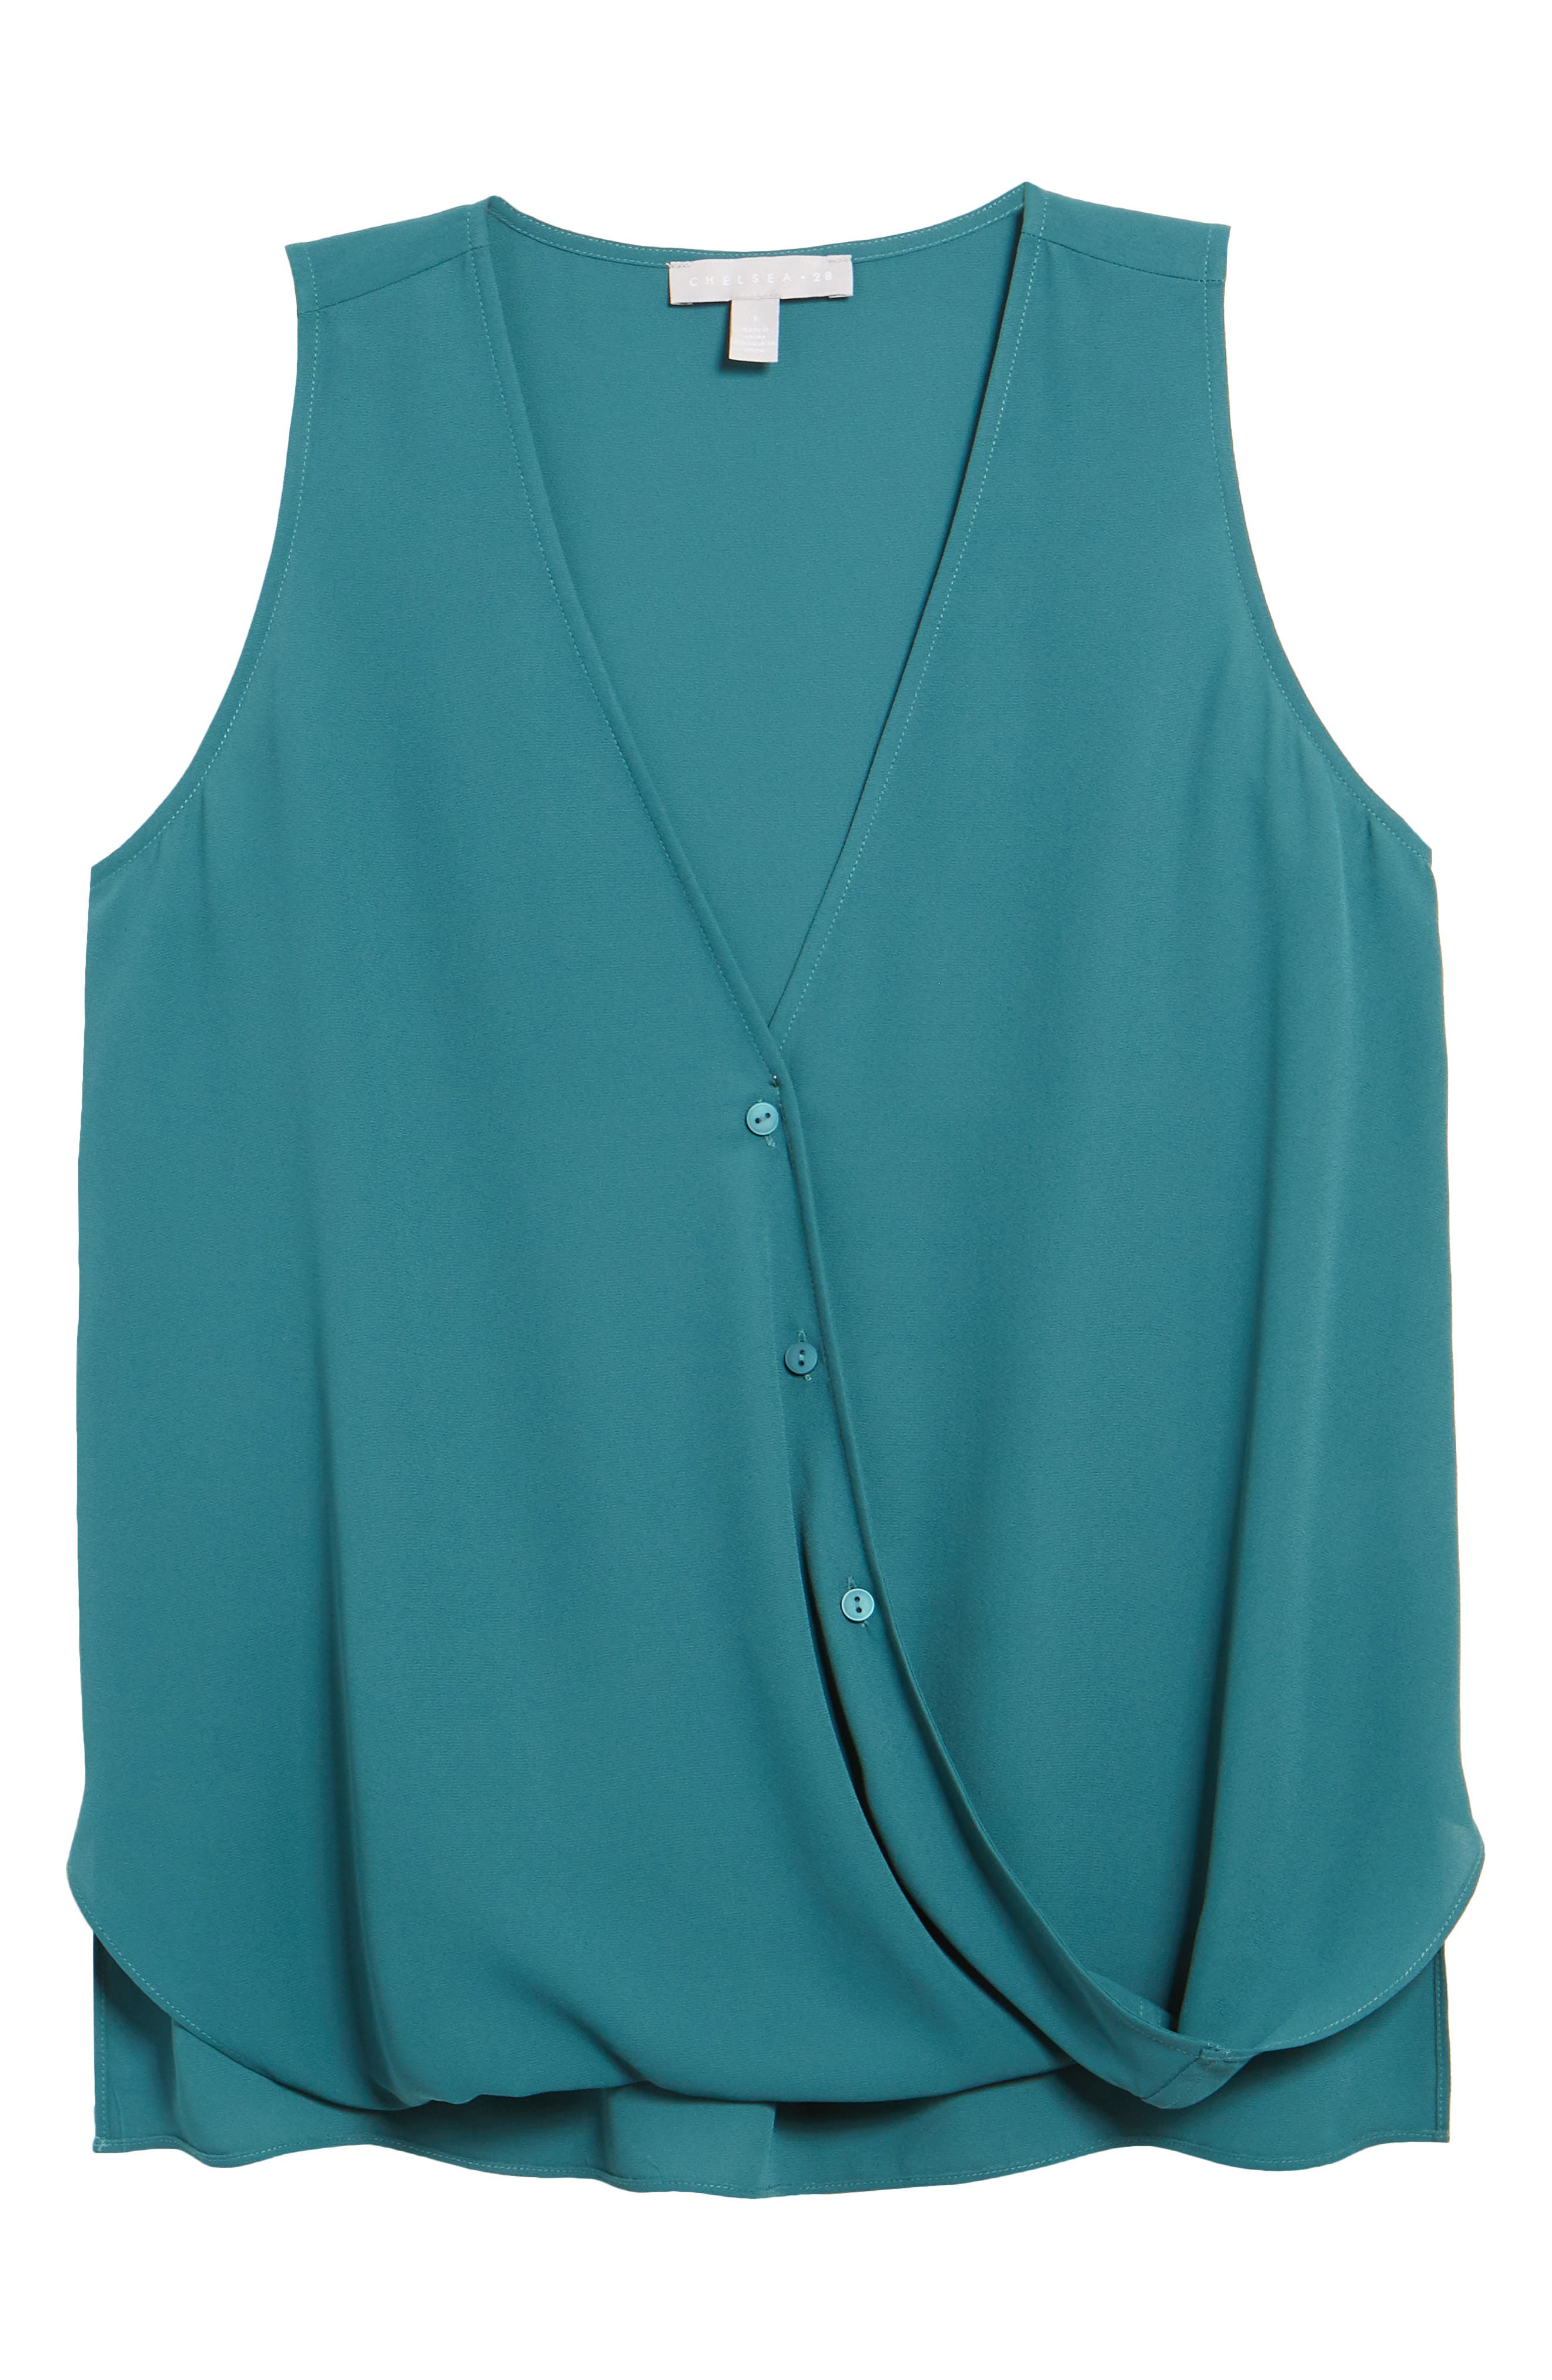 A button-closure surplice neckline begins a billowy sleeveless blouse that serves double-duty for work and play. Style Name: Chelsea28 Sleeveless Blouse. Style Number: 5943199. Available in stores.